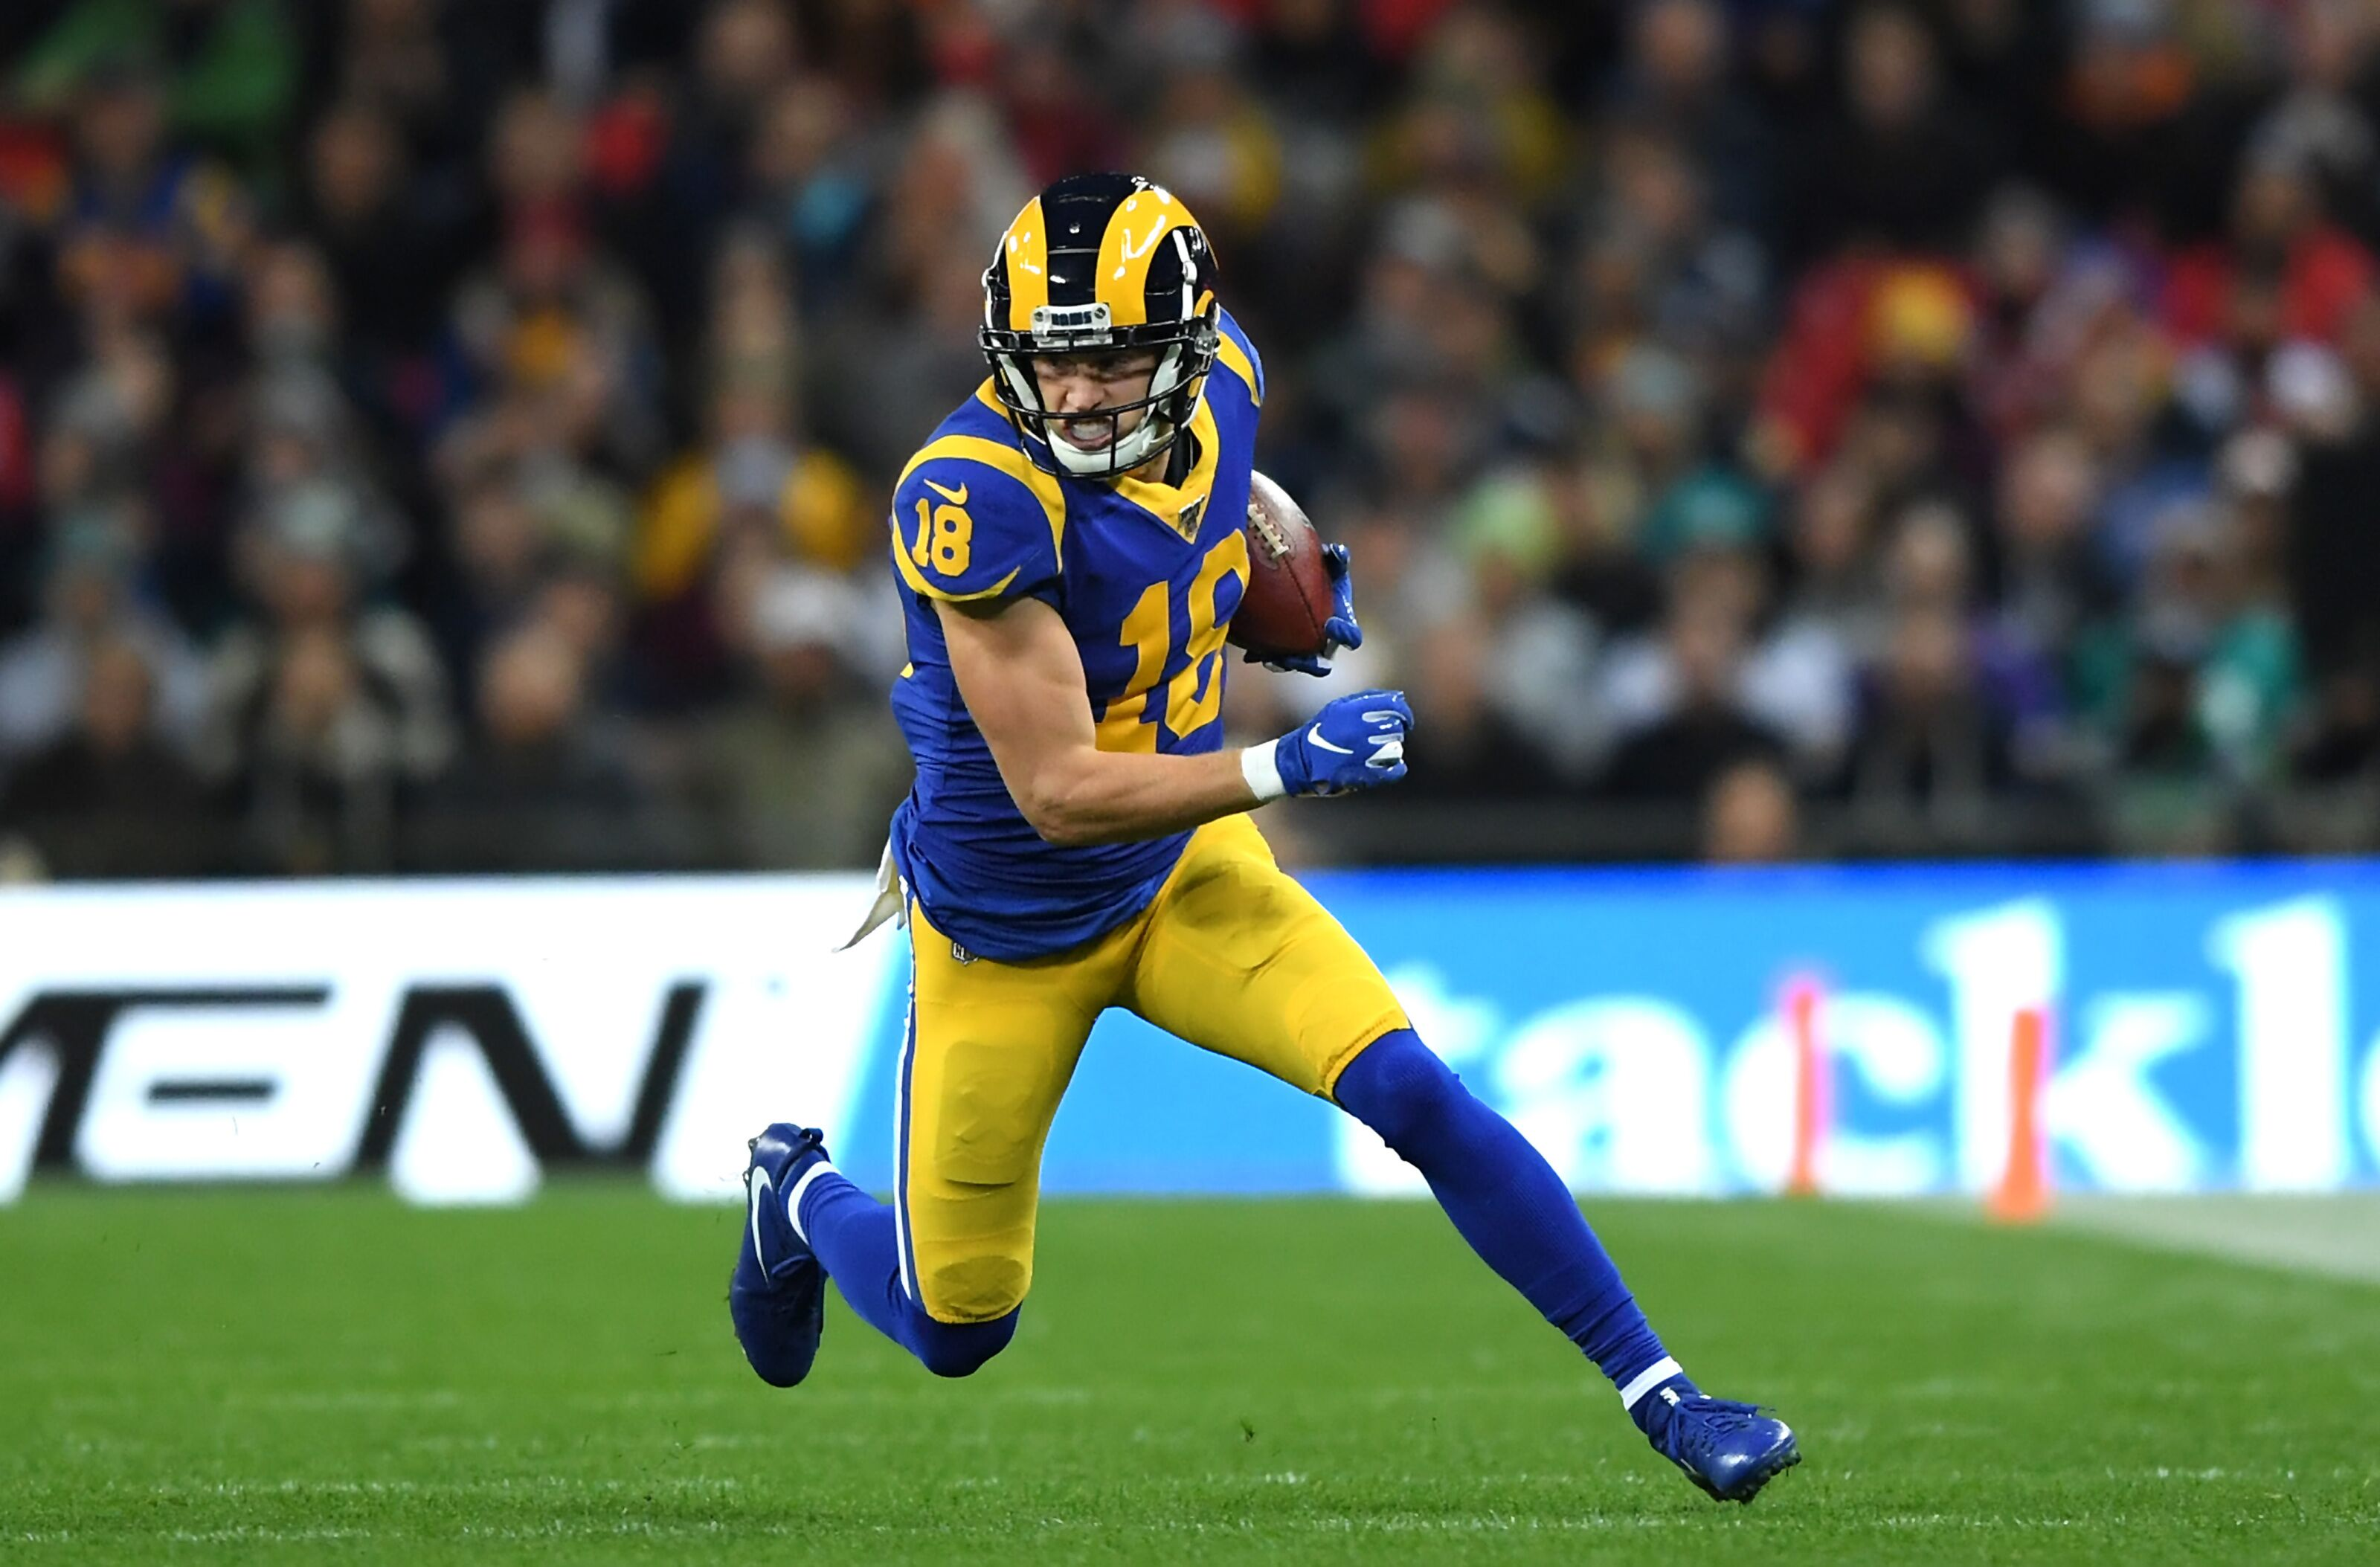 NFL DFS Sunday Night Football: FanDuel single game contest preview